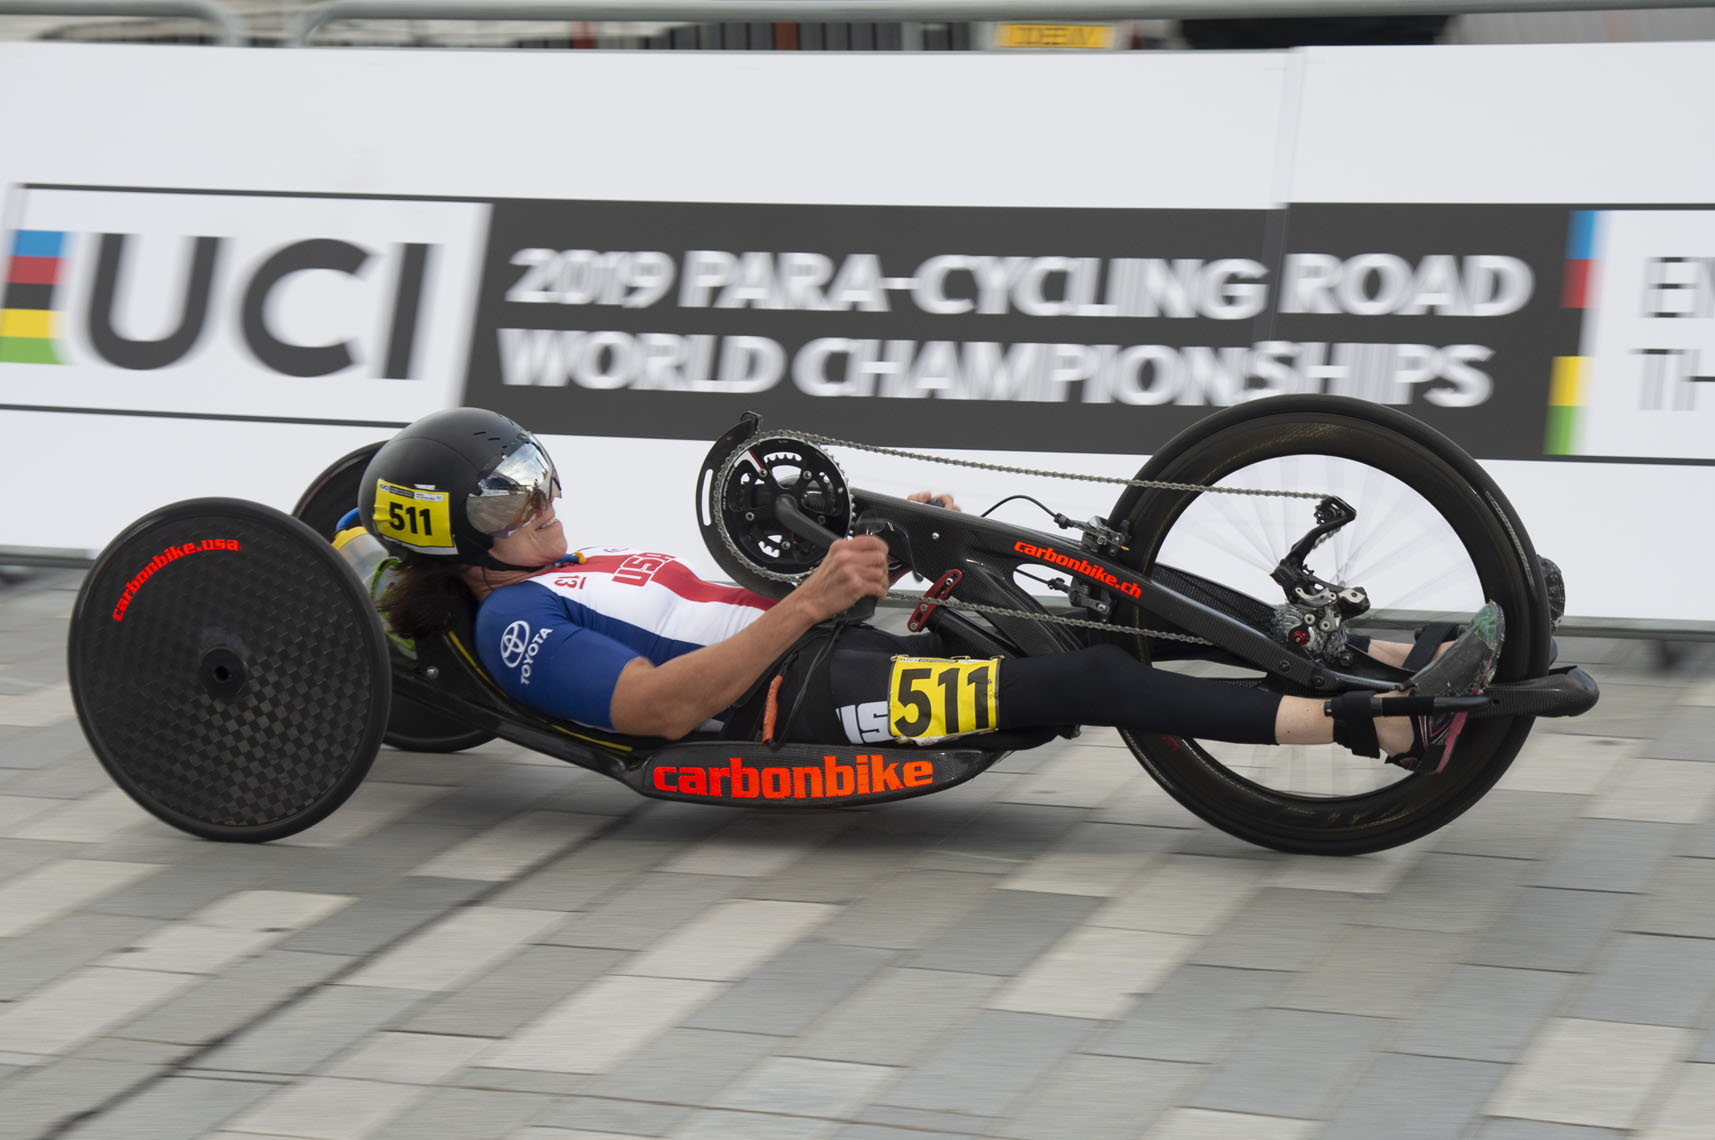 Alicia Dana, 2019 Paracycling Road World Championships